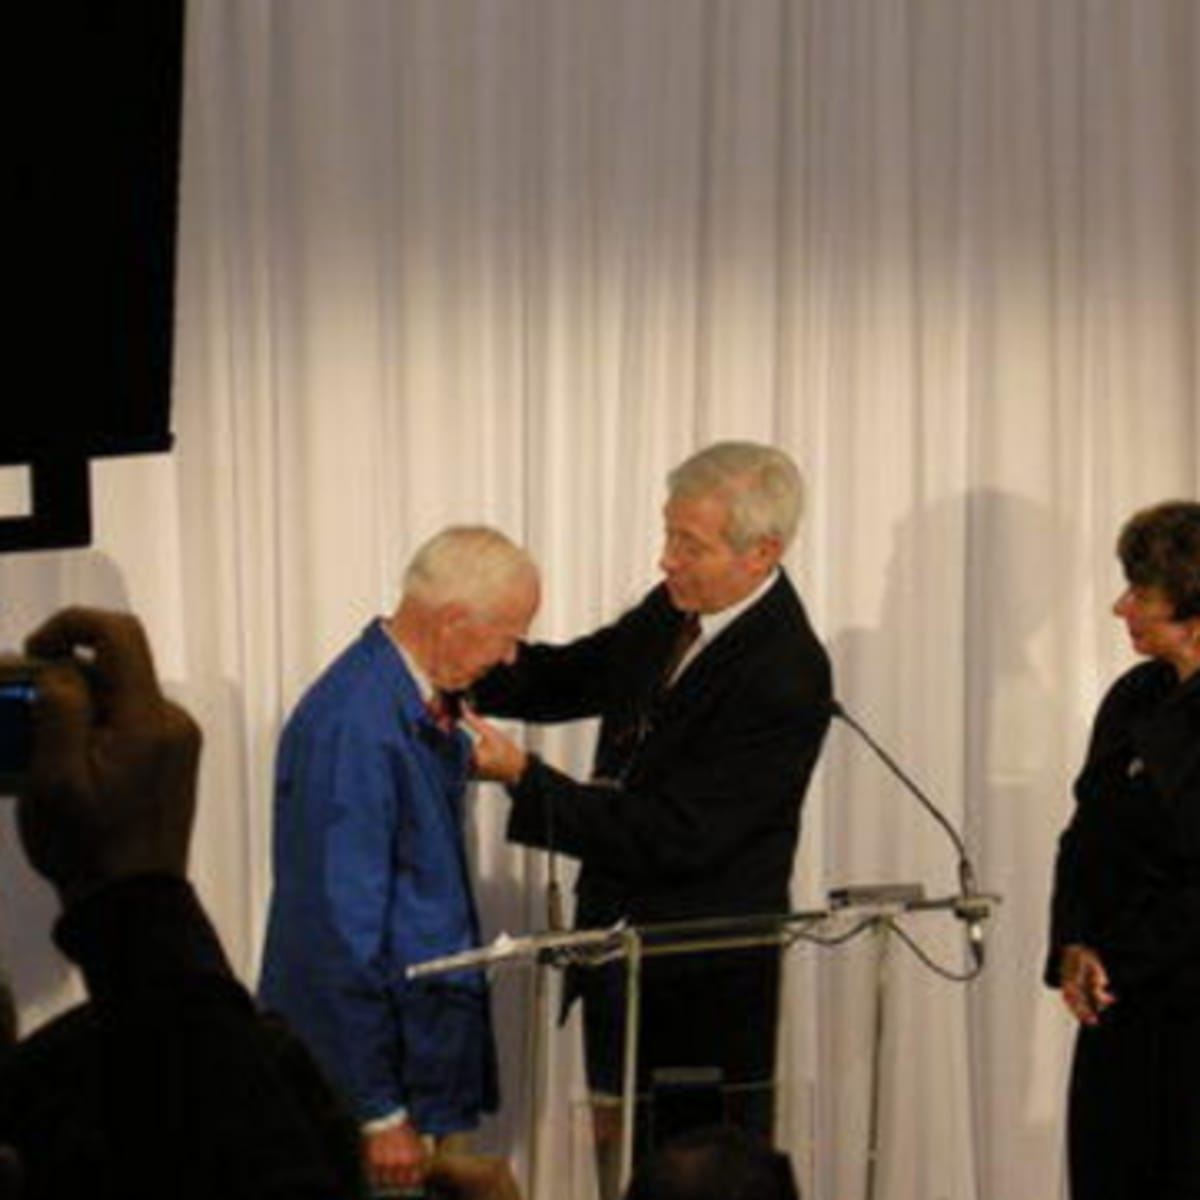 Bill Cunningham receives award from French govenment